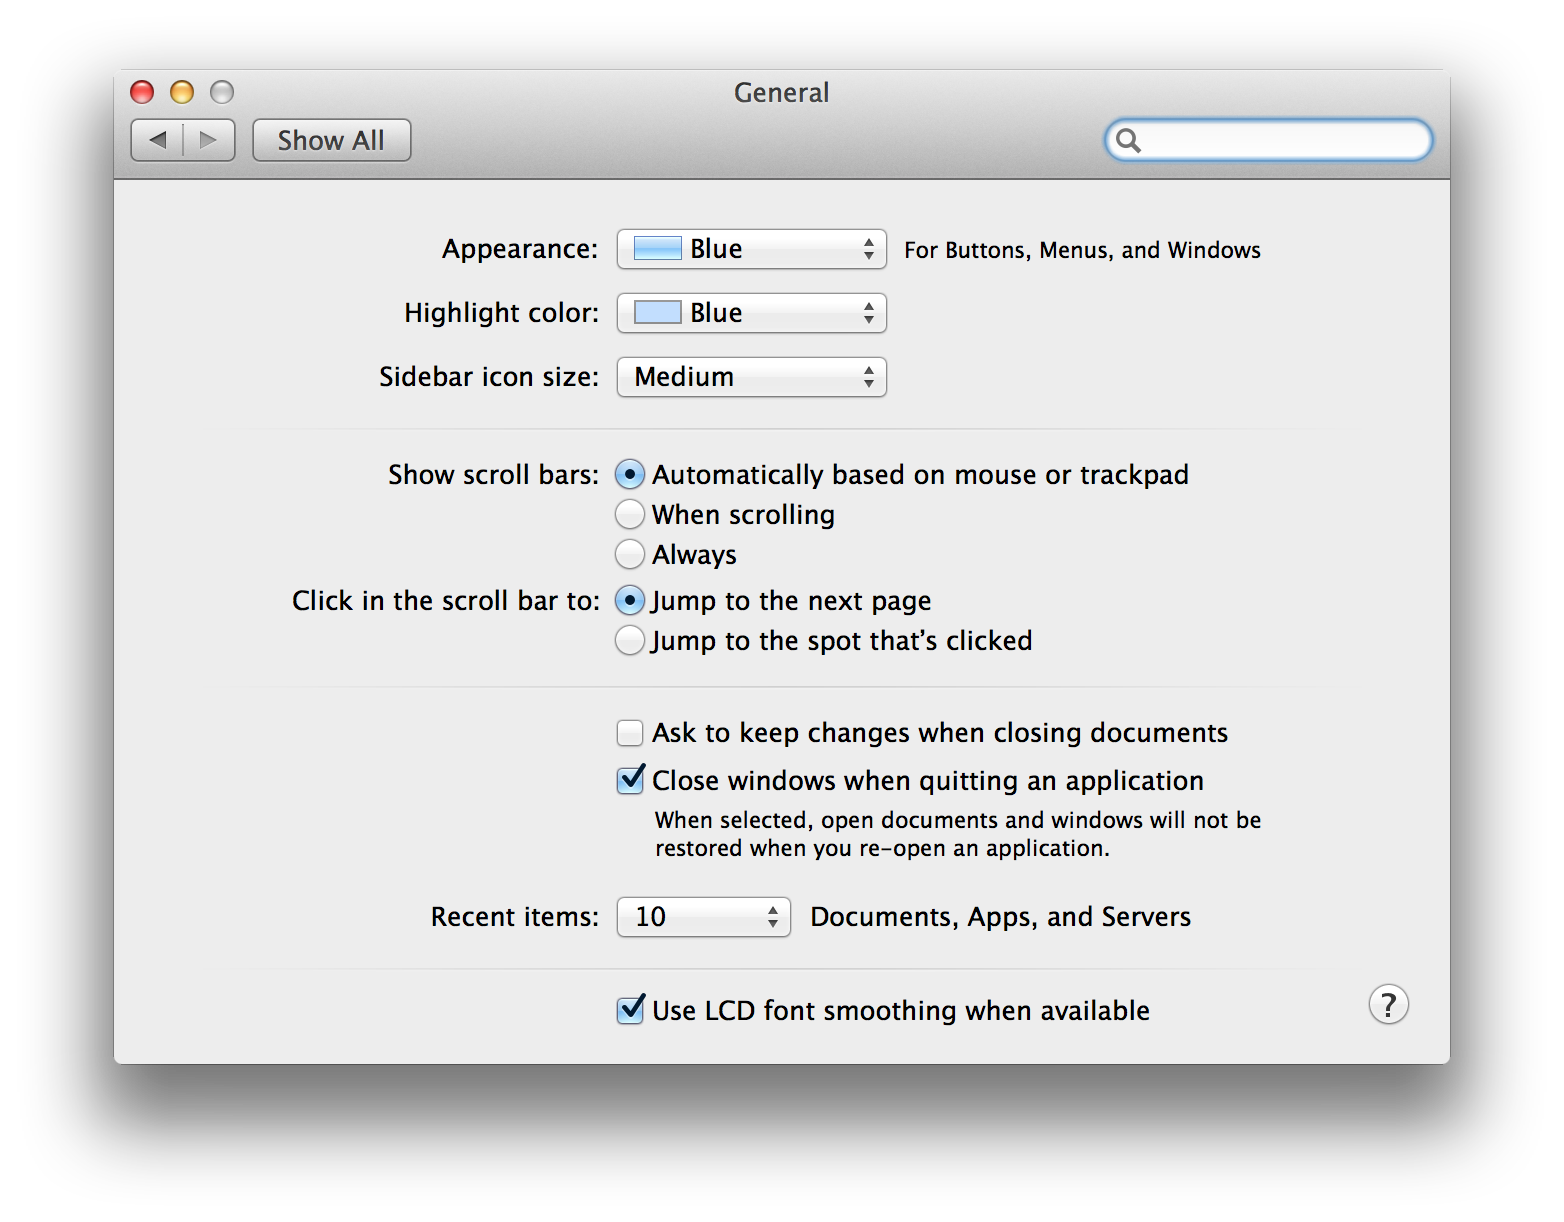 Screenshot showing Mavericks' General System Settings